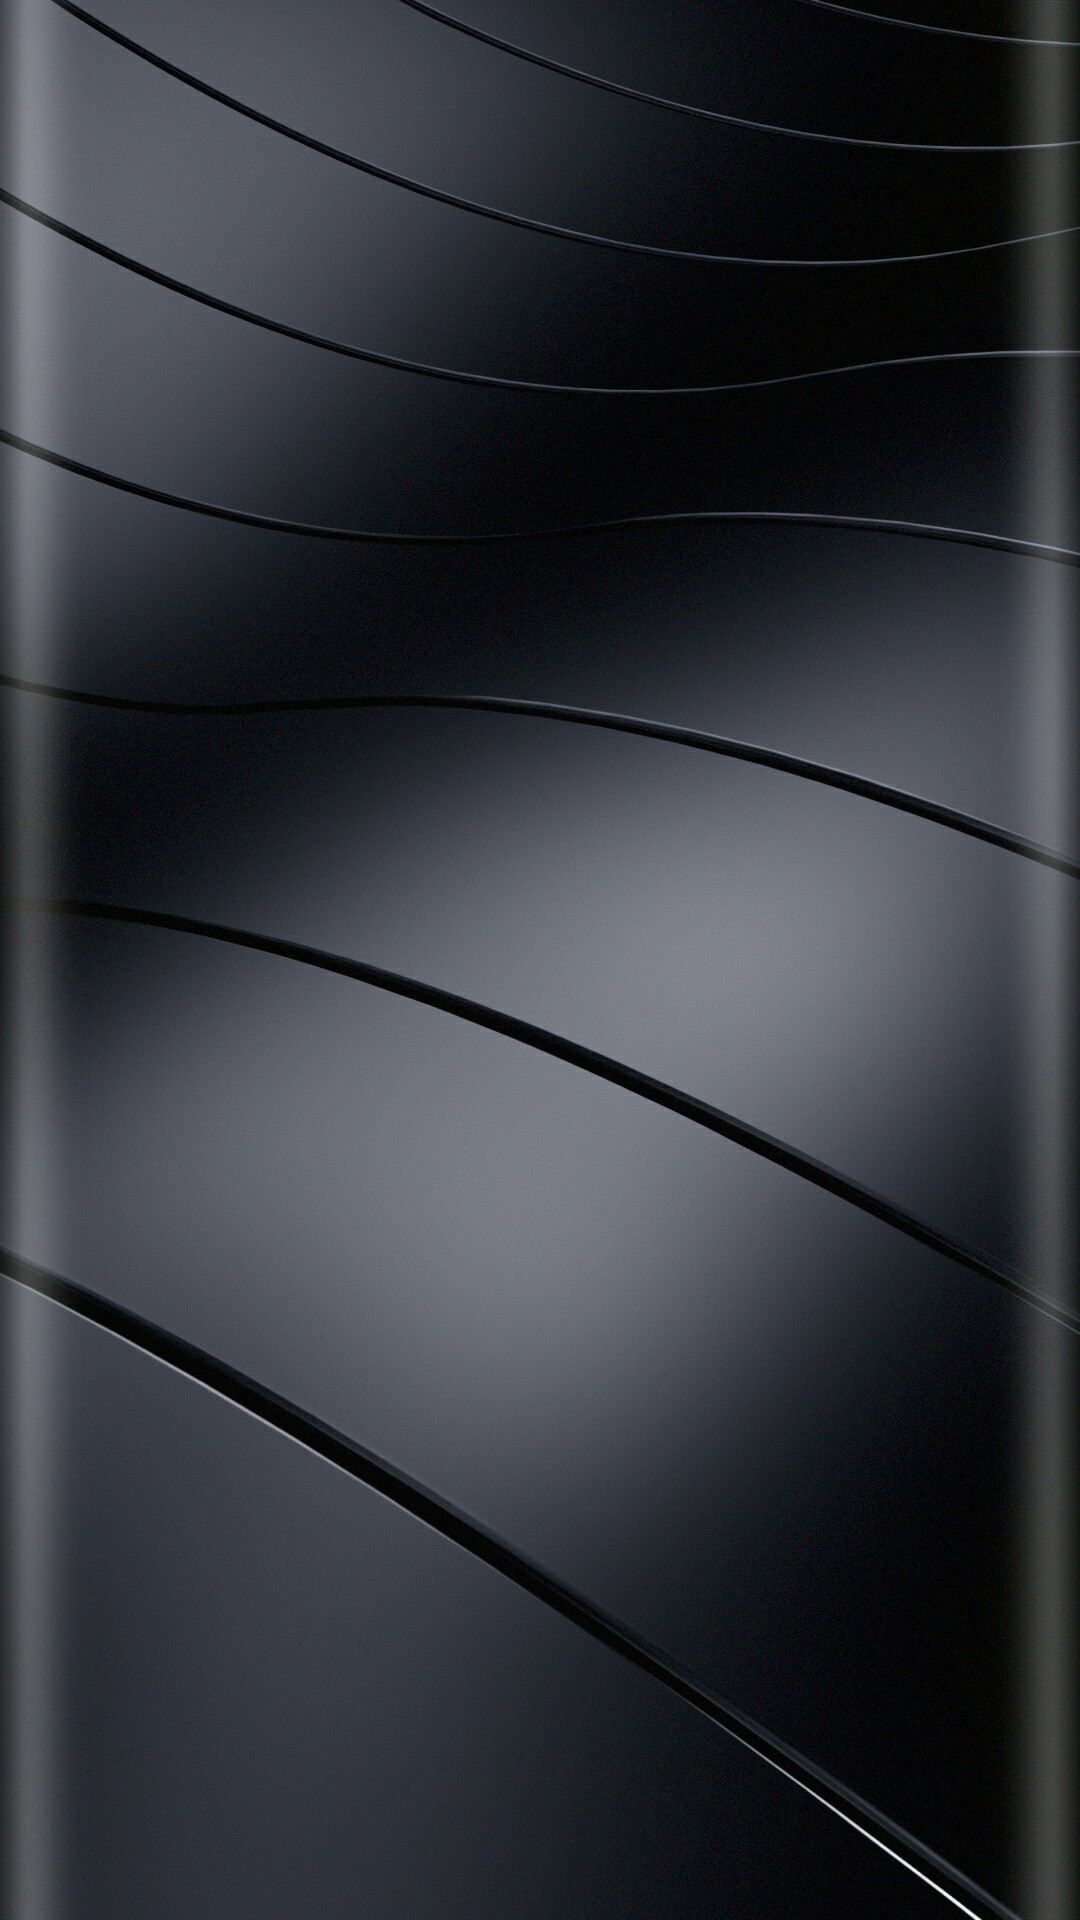 Blue Wavy Curves Wallpaper · Phone WallpapersCurves